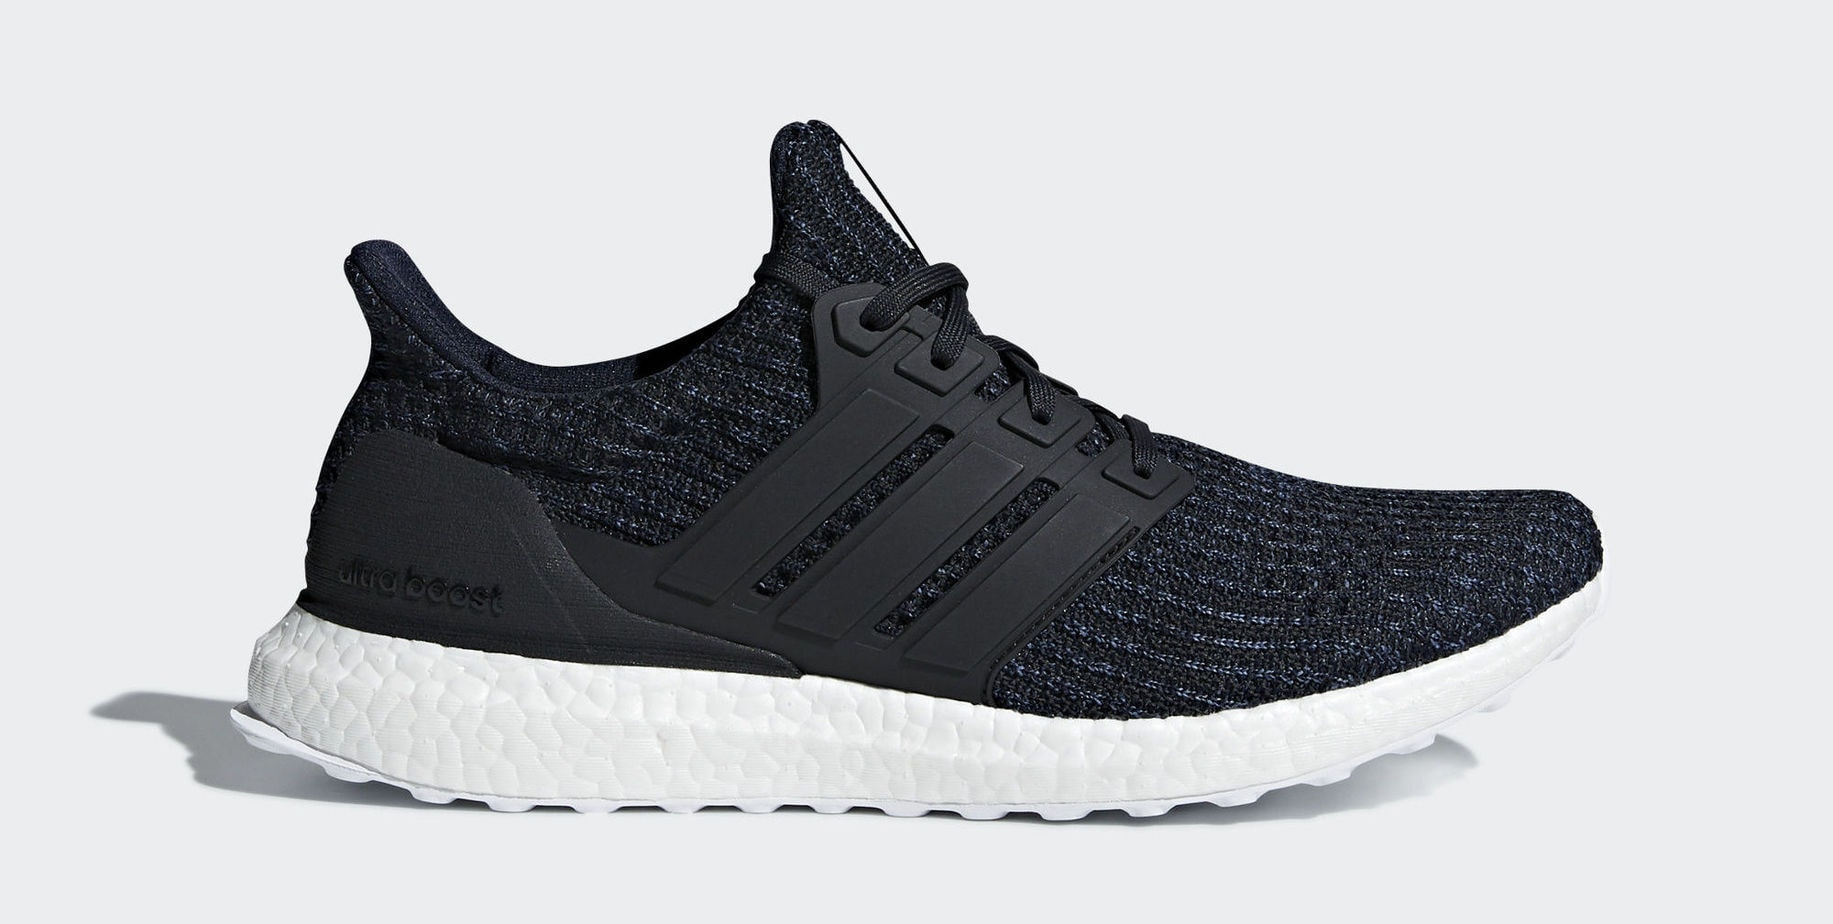 premium selection bf376 62224 With the June release just around the corner, we re starting to see all the  shoes that will launch, like this new Parley Ultra Boost ...